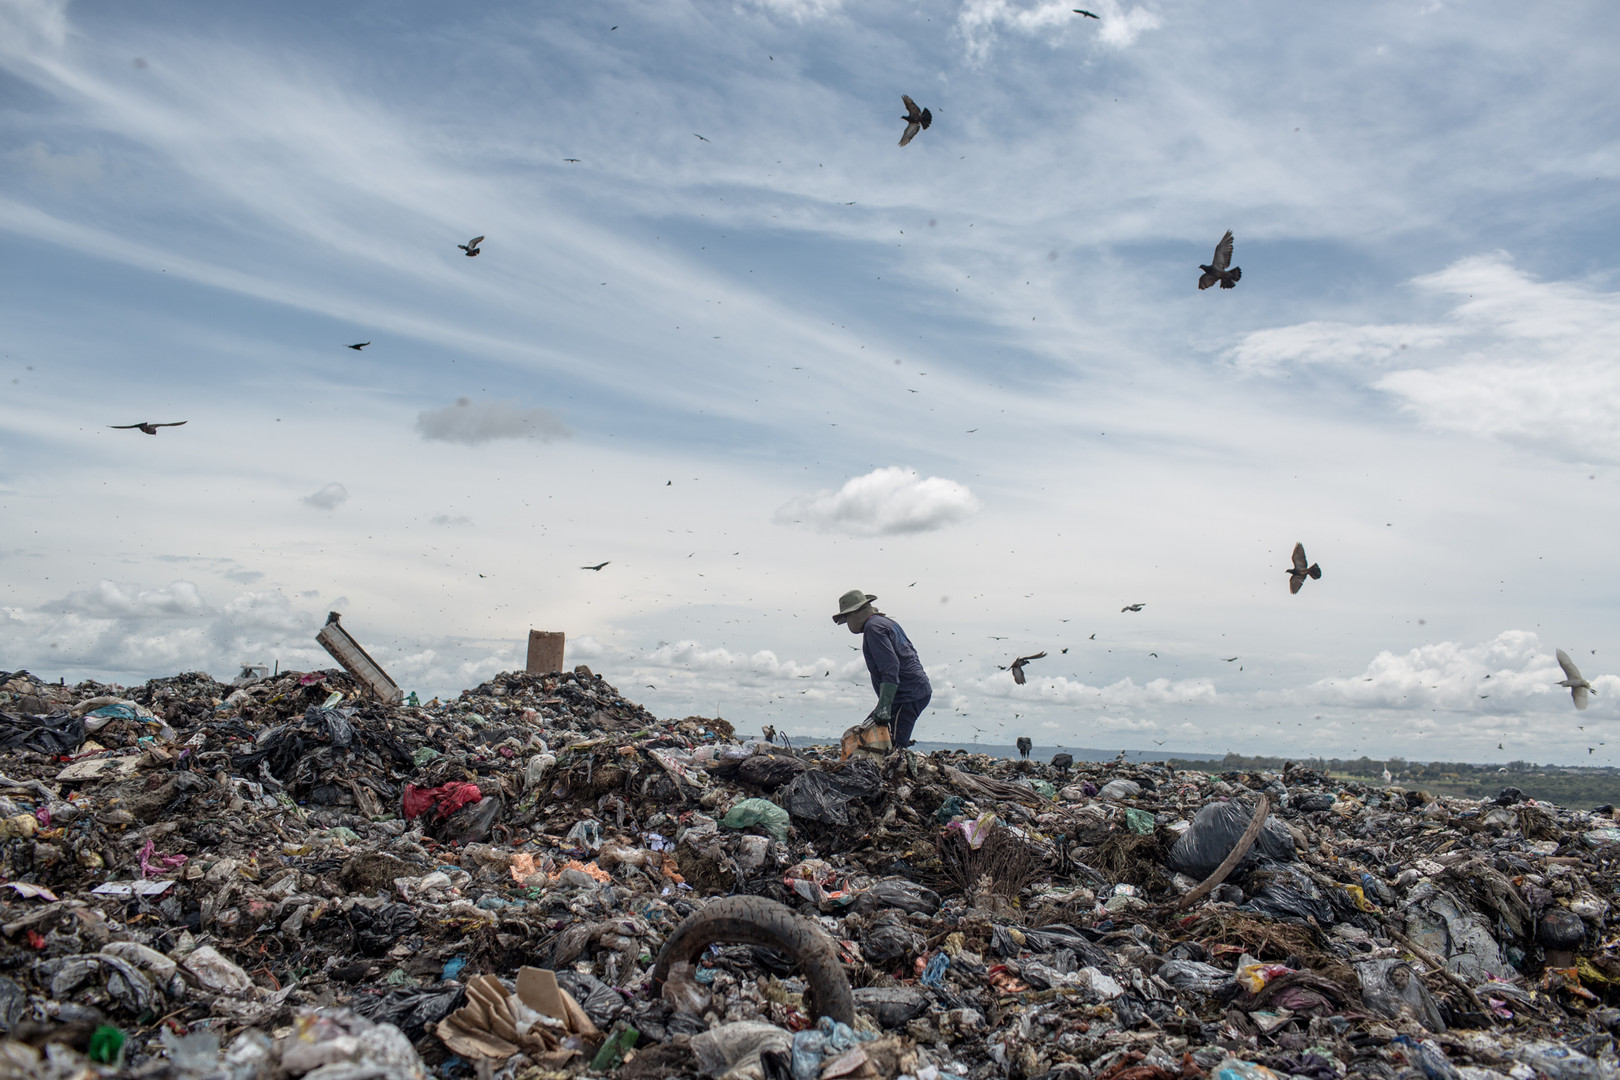 A picker walks through a pile of wet waste at the Estrutural dump, in Brasilia, on Monday, Jan. 15, 2018.